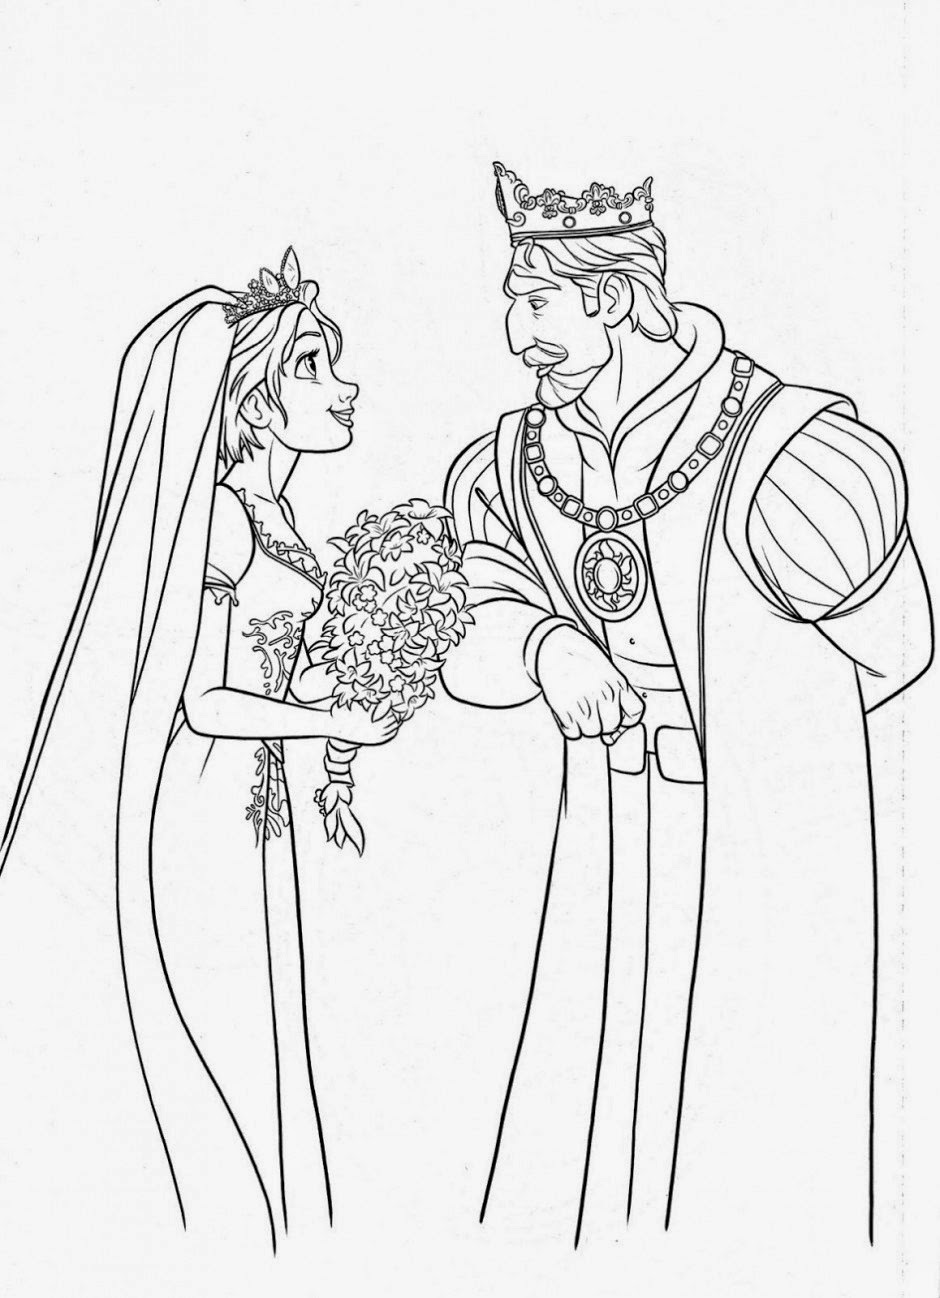 free rapunzel coloring pages rapunzel coloring pages part 11 coloring pages free rapunzel